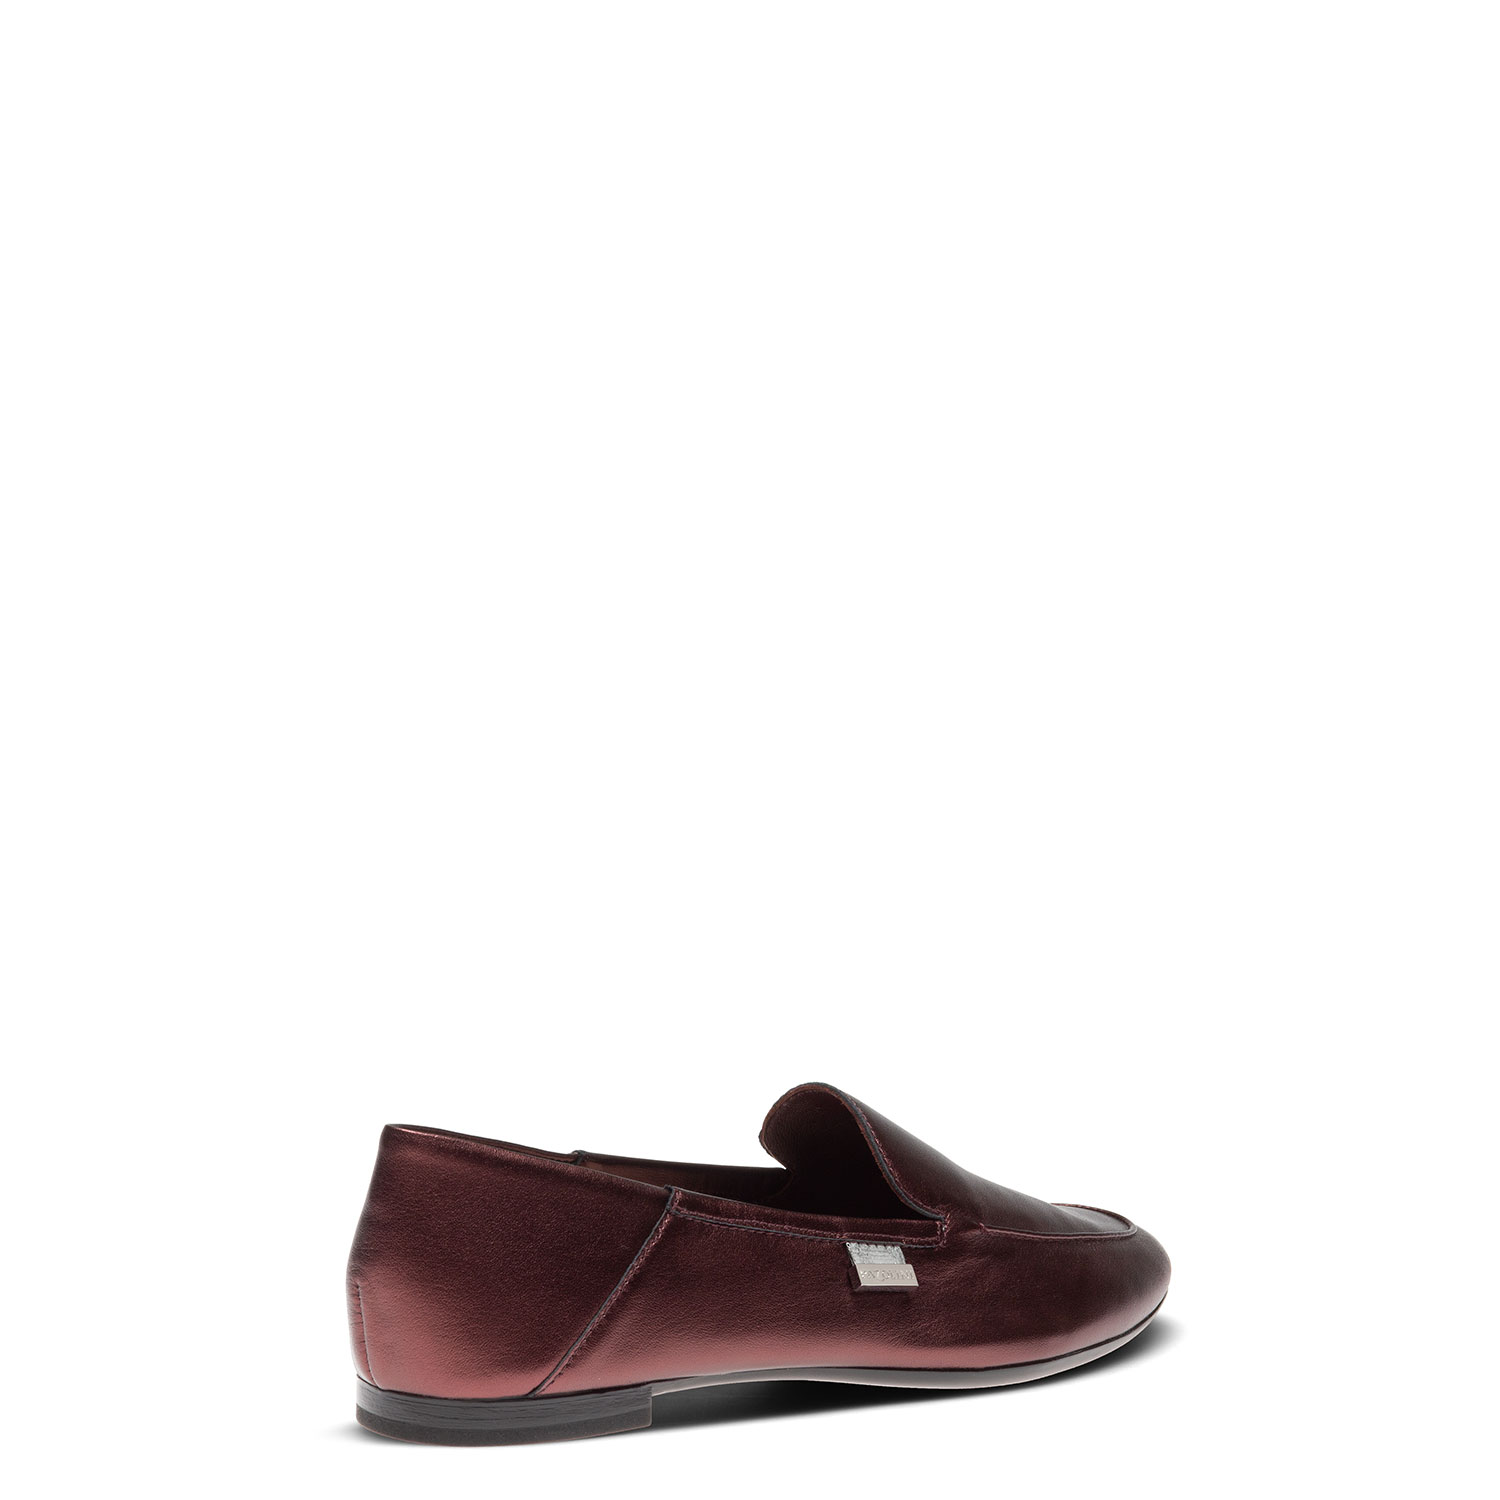 Women's shoes PAZOLINI FG-DEB1-11